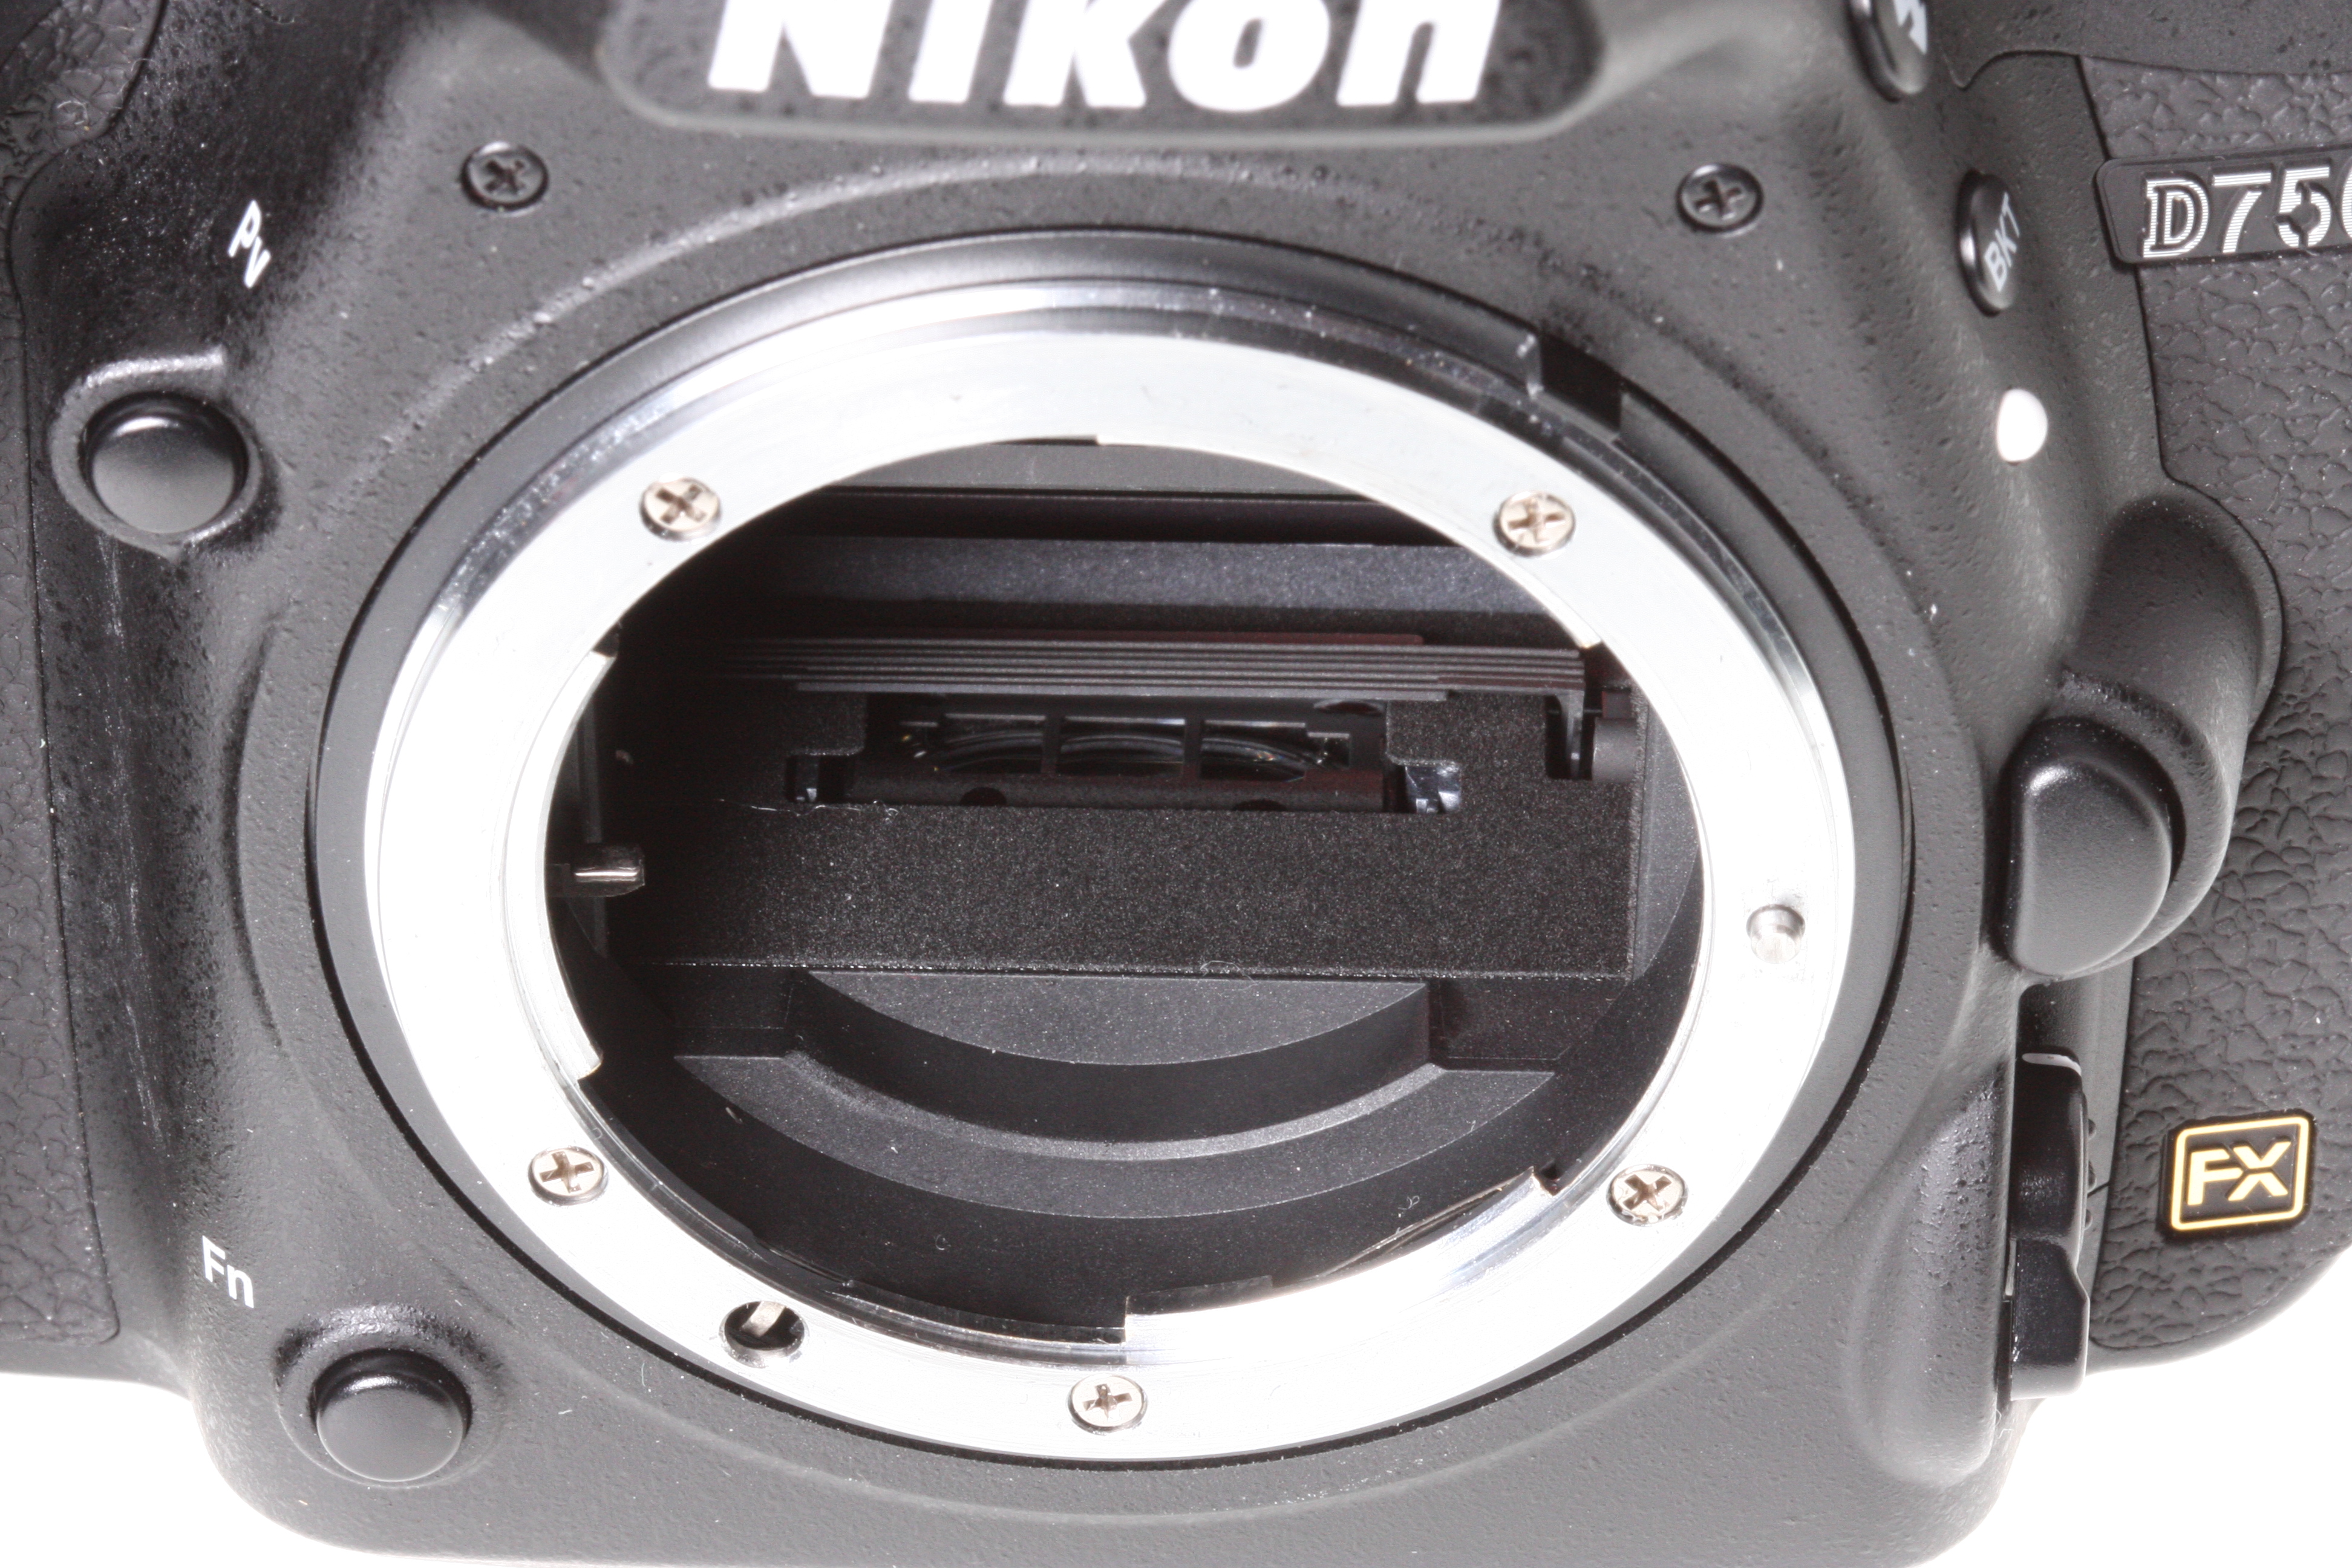 Nikon D750 flare problems? Here's why and what to do about